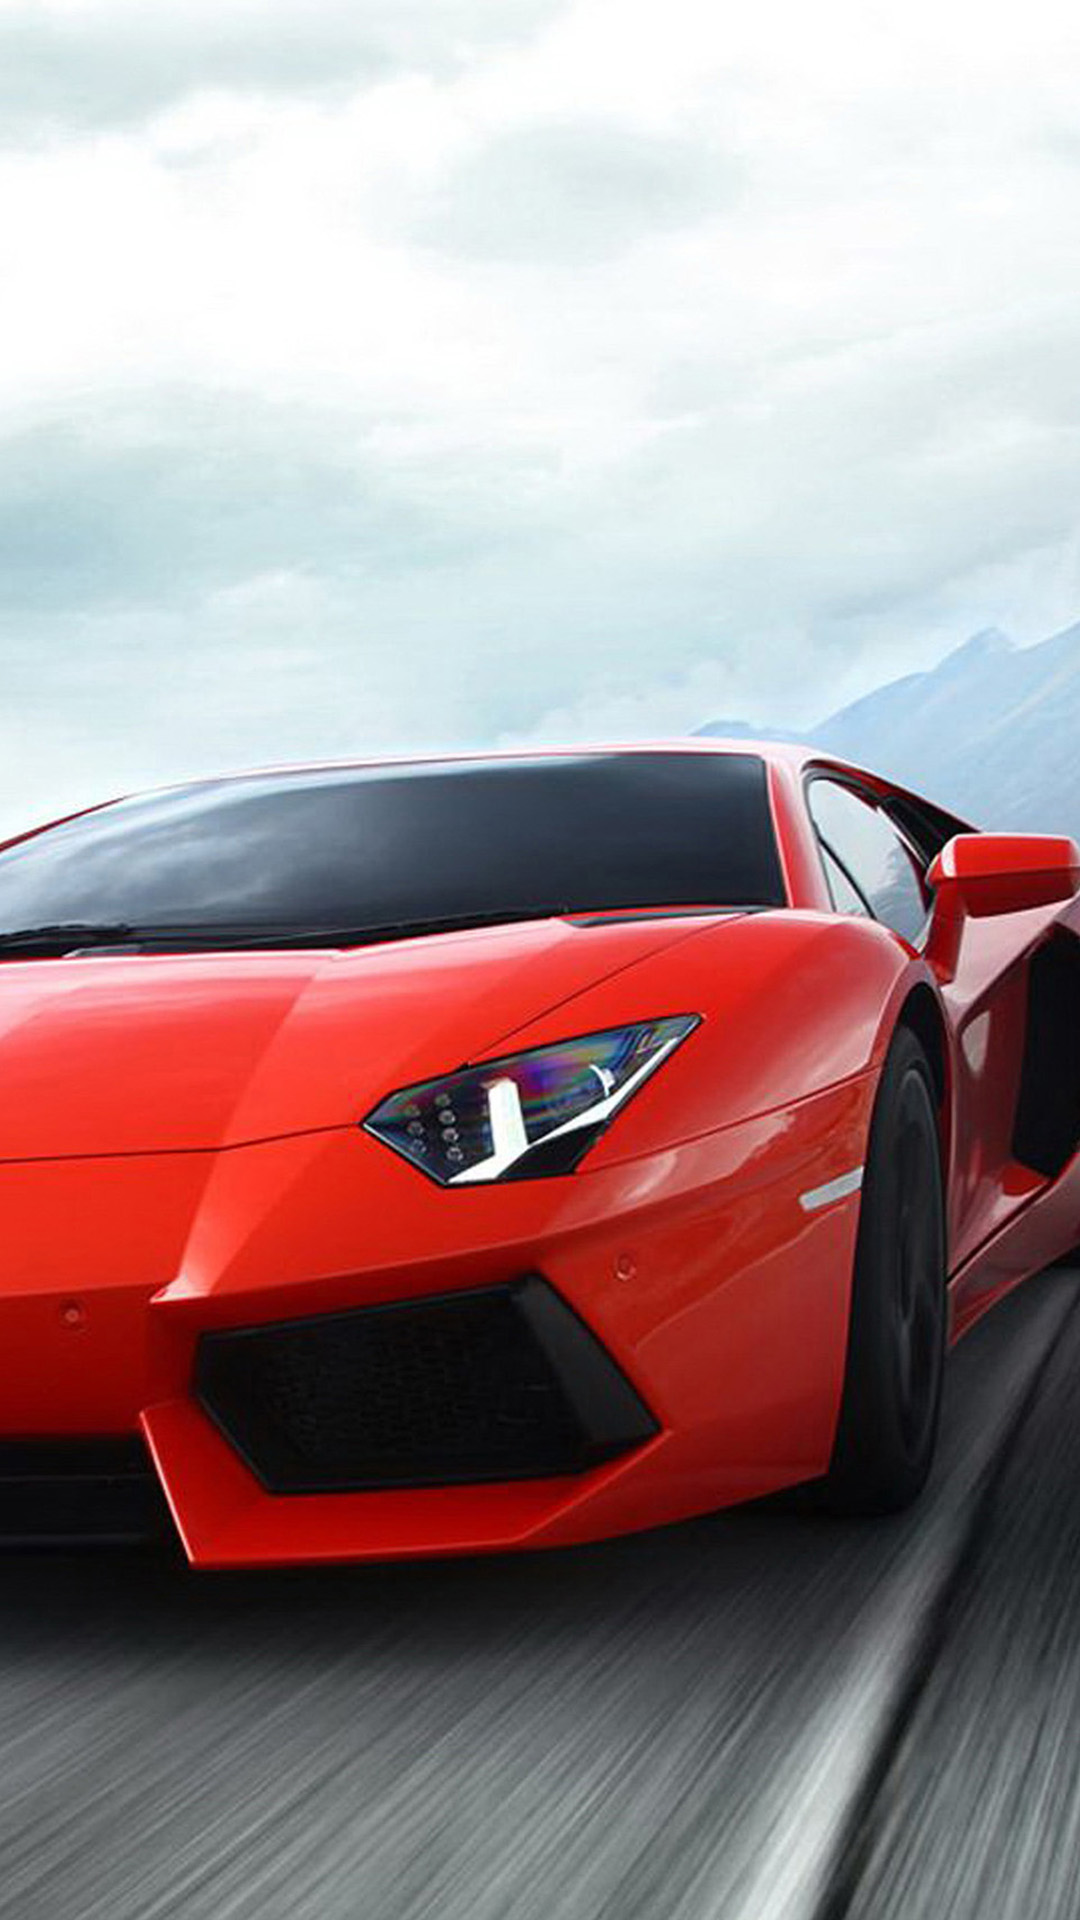 Cars Wallpapers For Iphone 6 Posted By Samantha Peltier